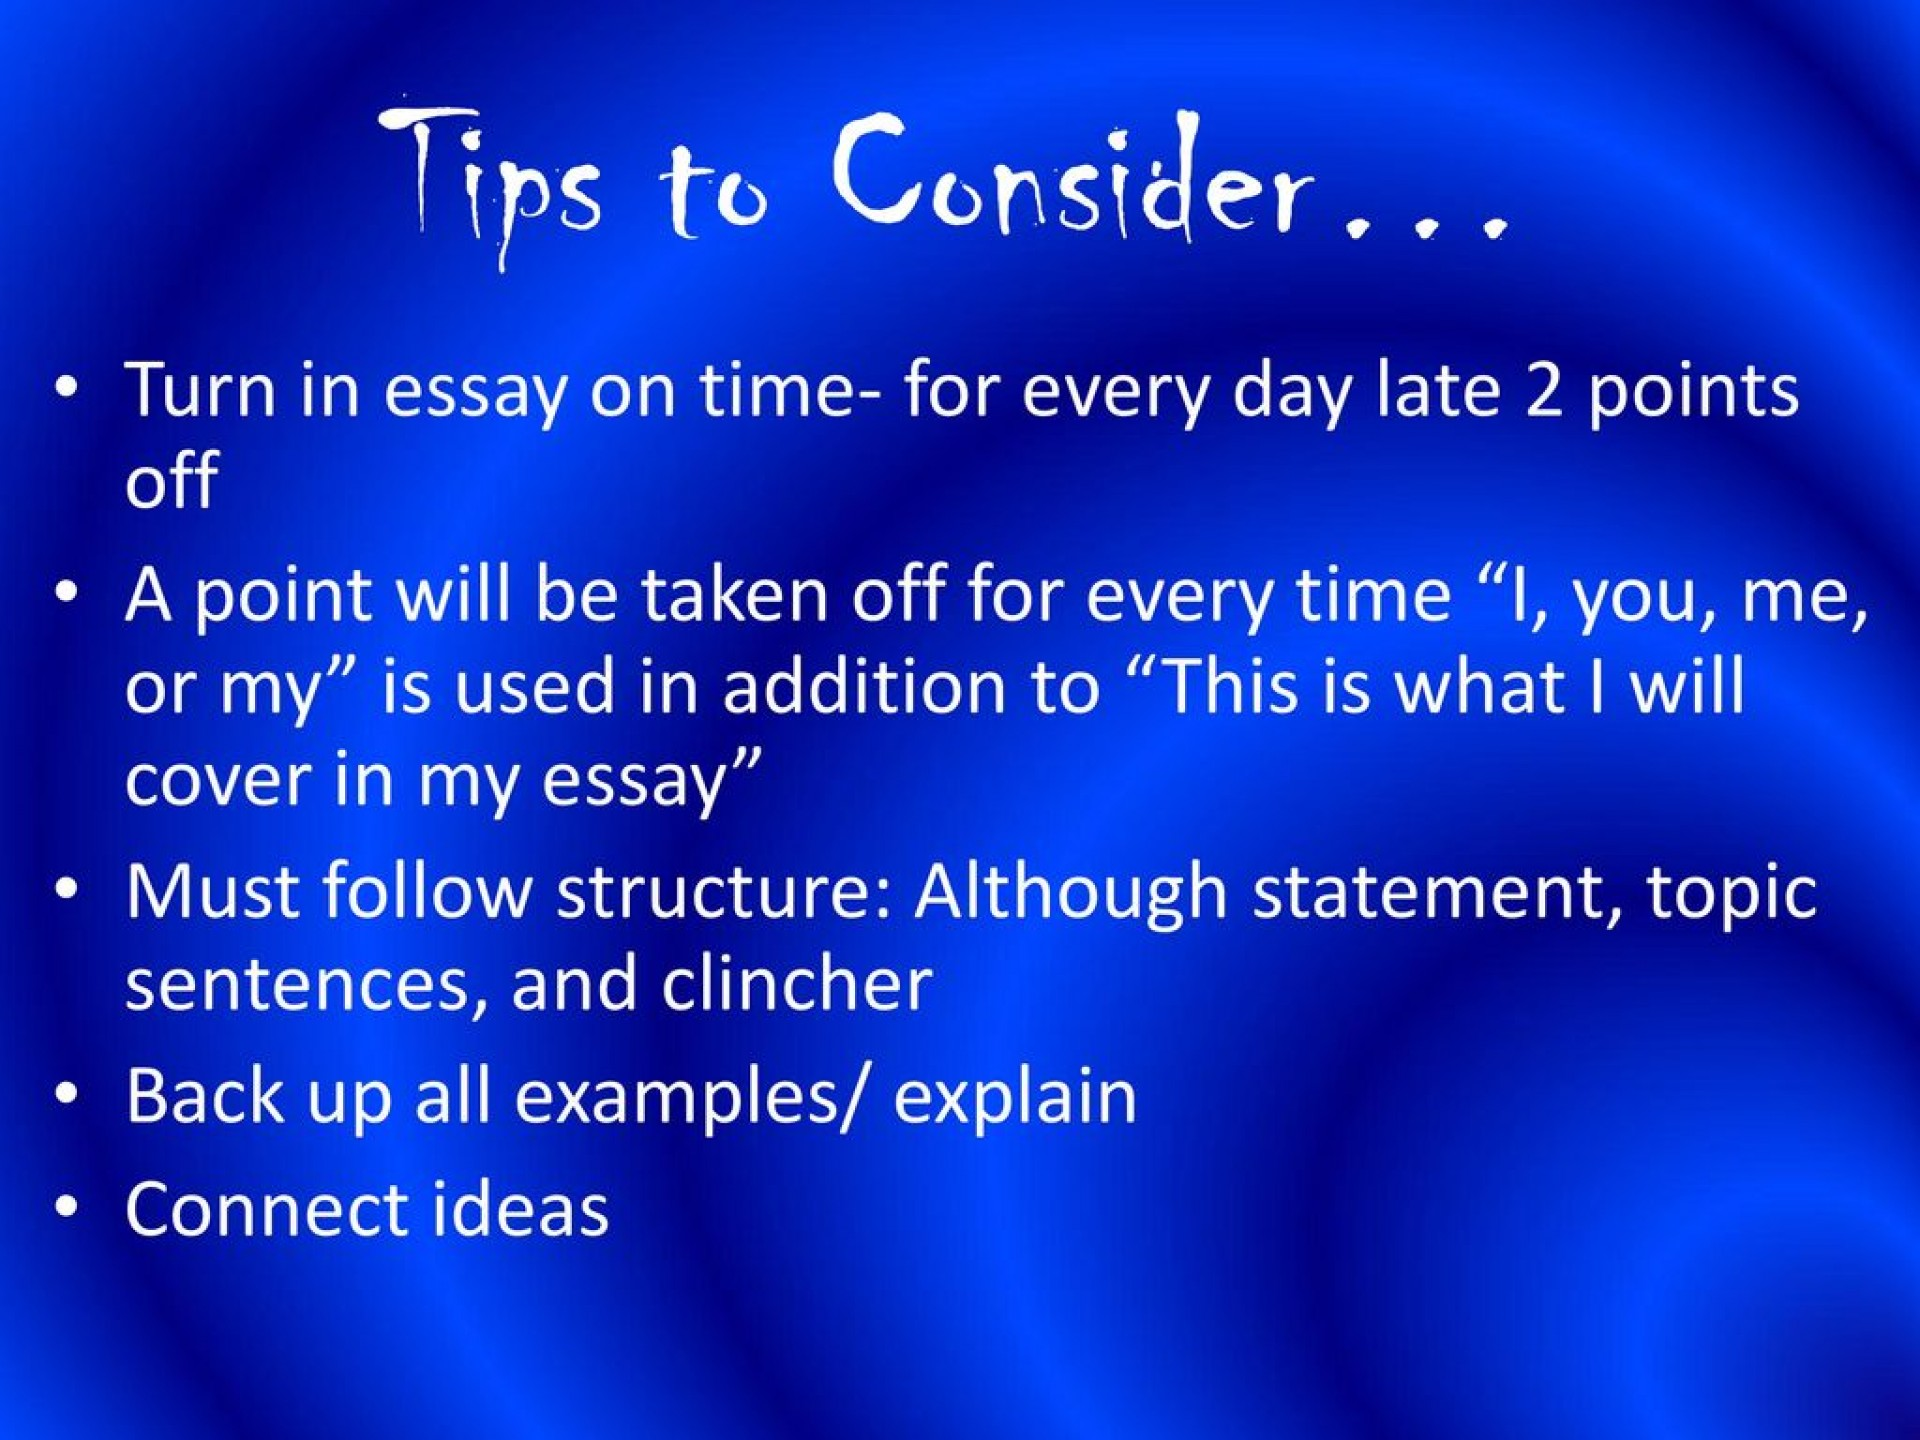 011 Avatar Imperialism Essay Example Tipstoconsidere280a6turninessayontime Stirring 1920